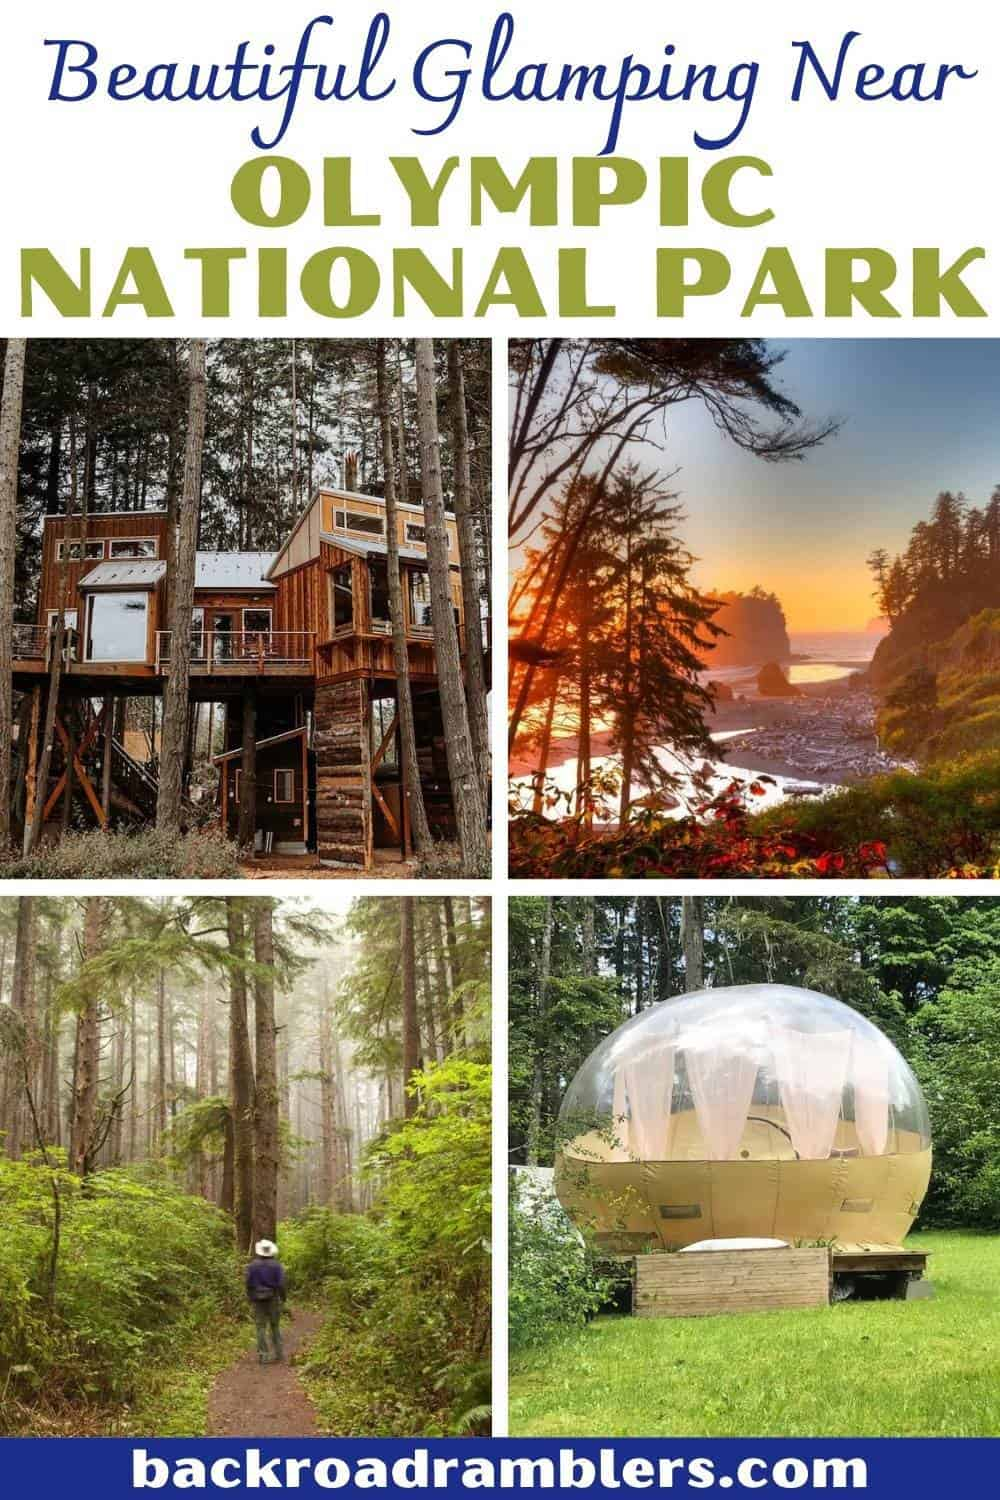 A collage of glamping photos near Olympic National Park in Washington. Text overlay: Beautiful Glamping Near Olympic National Park.